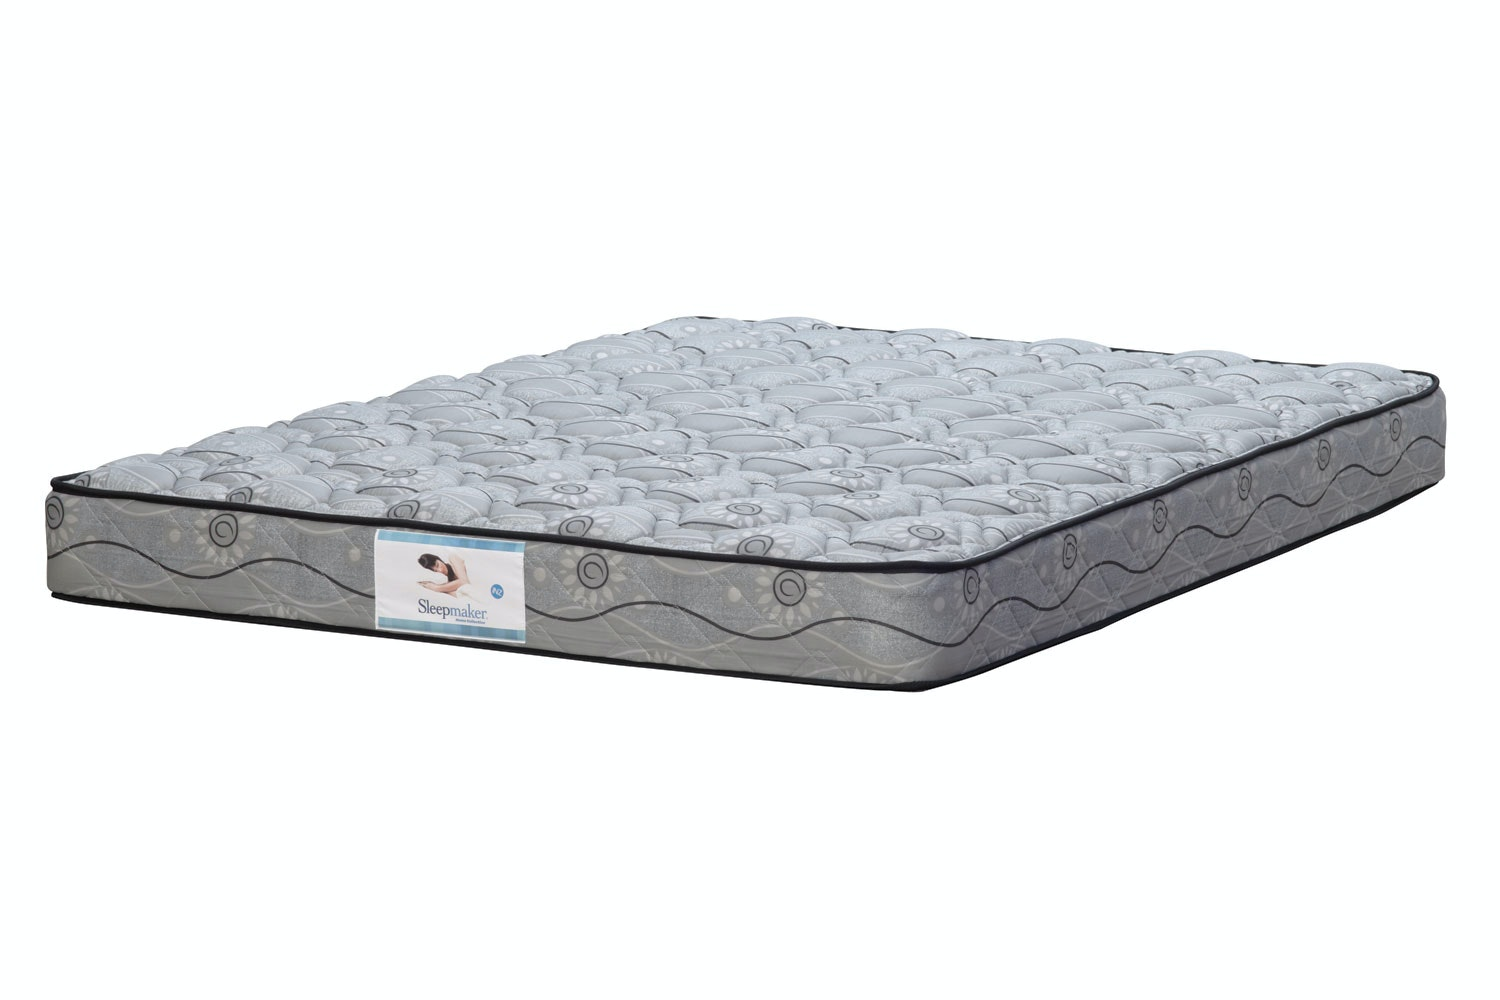 Slumber Support Medium KIng Mattress by Sleepmaker